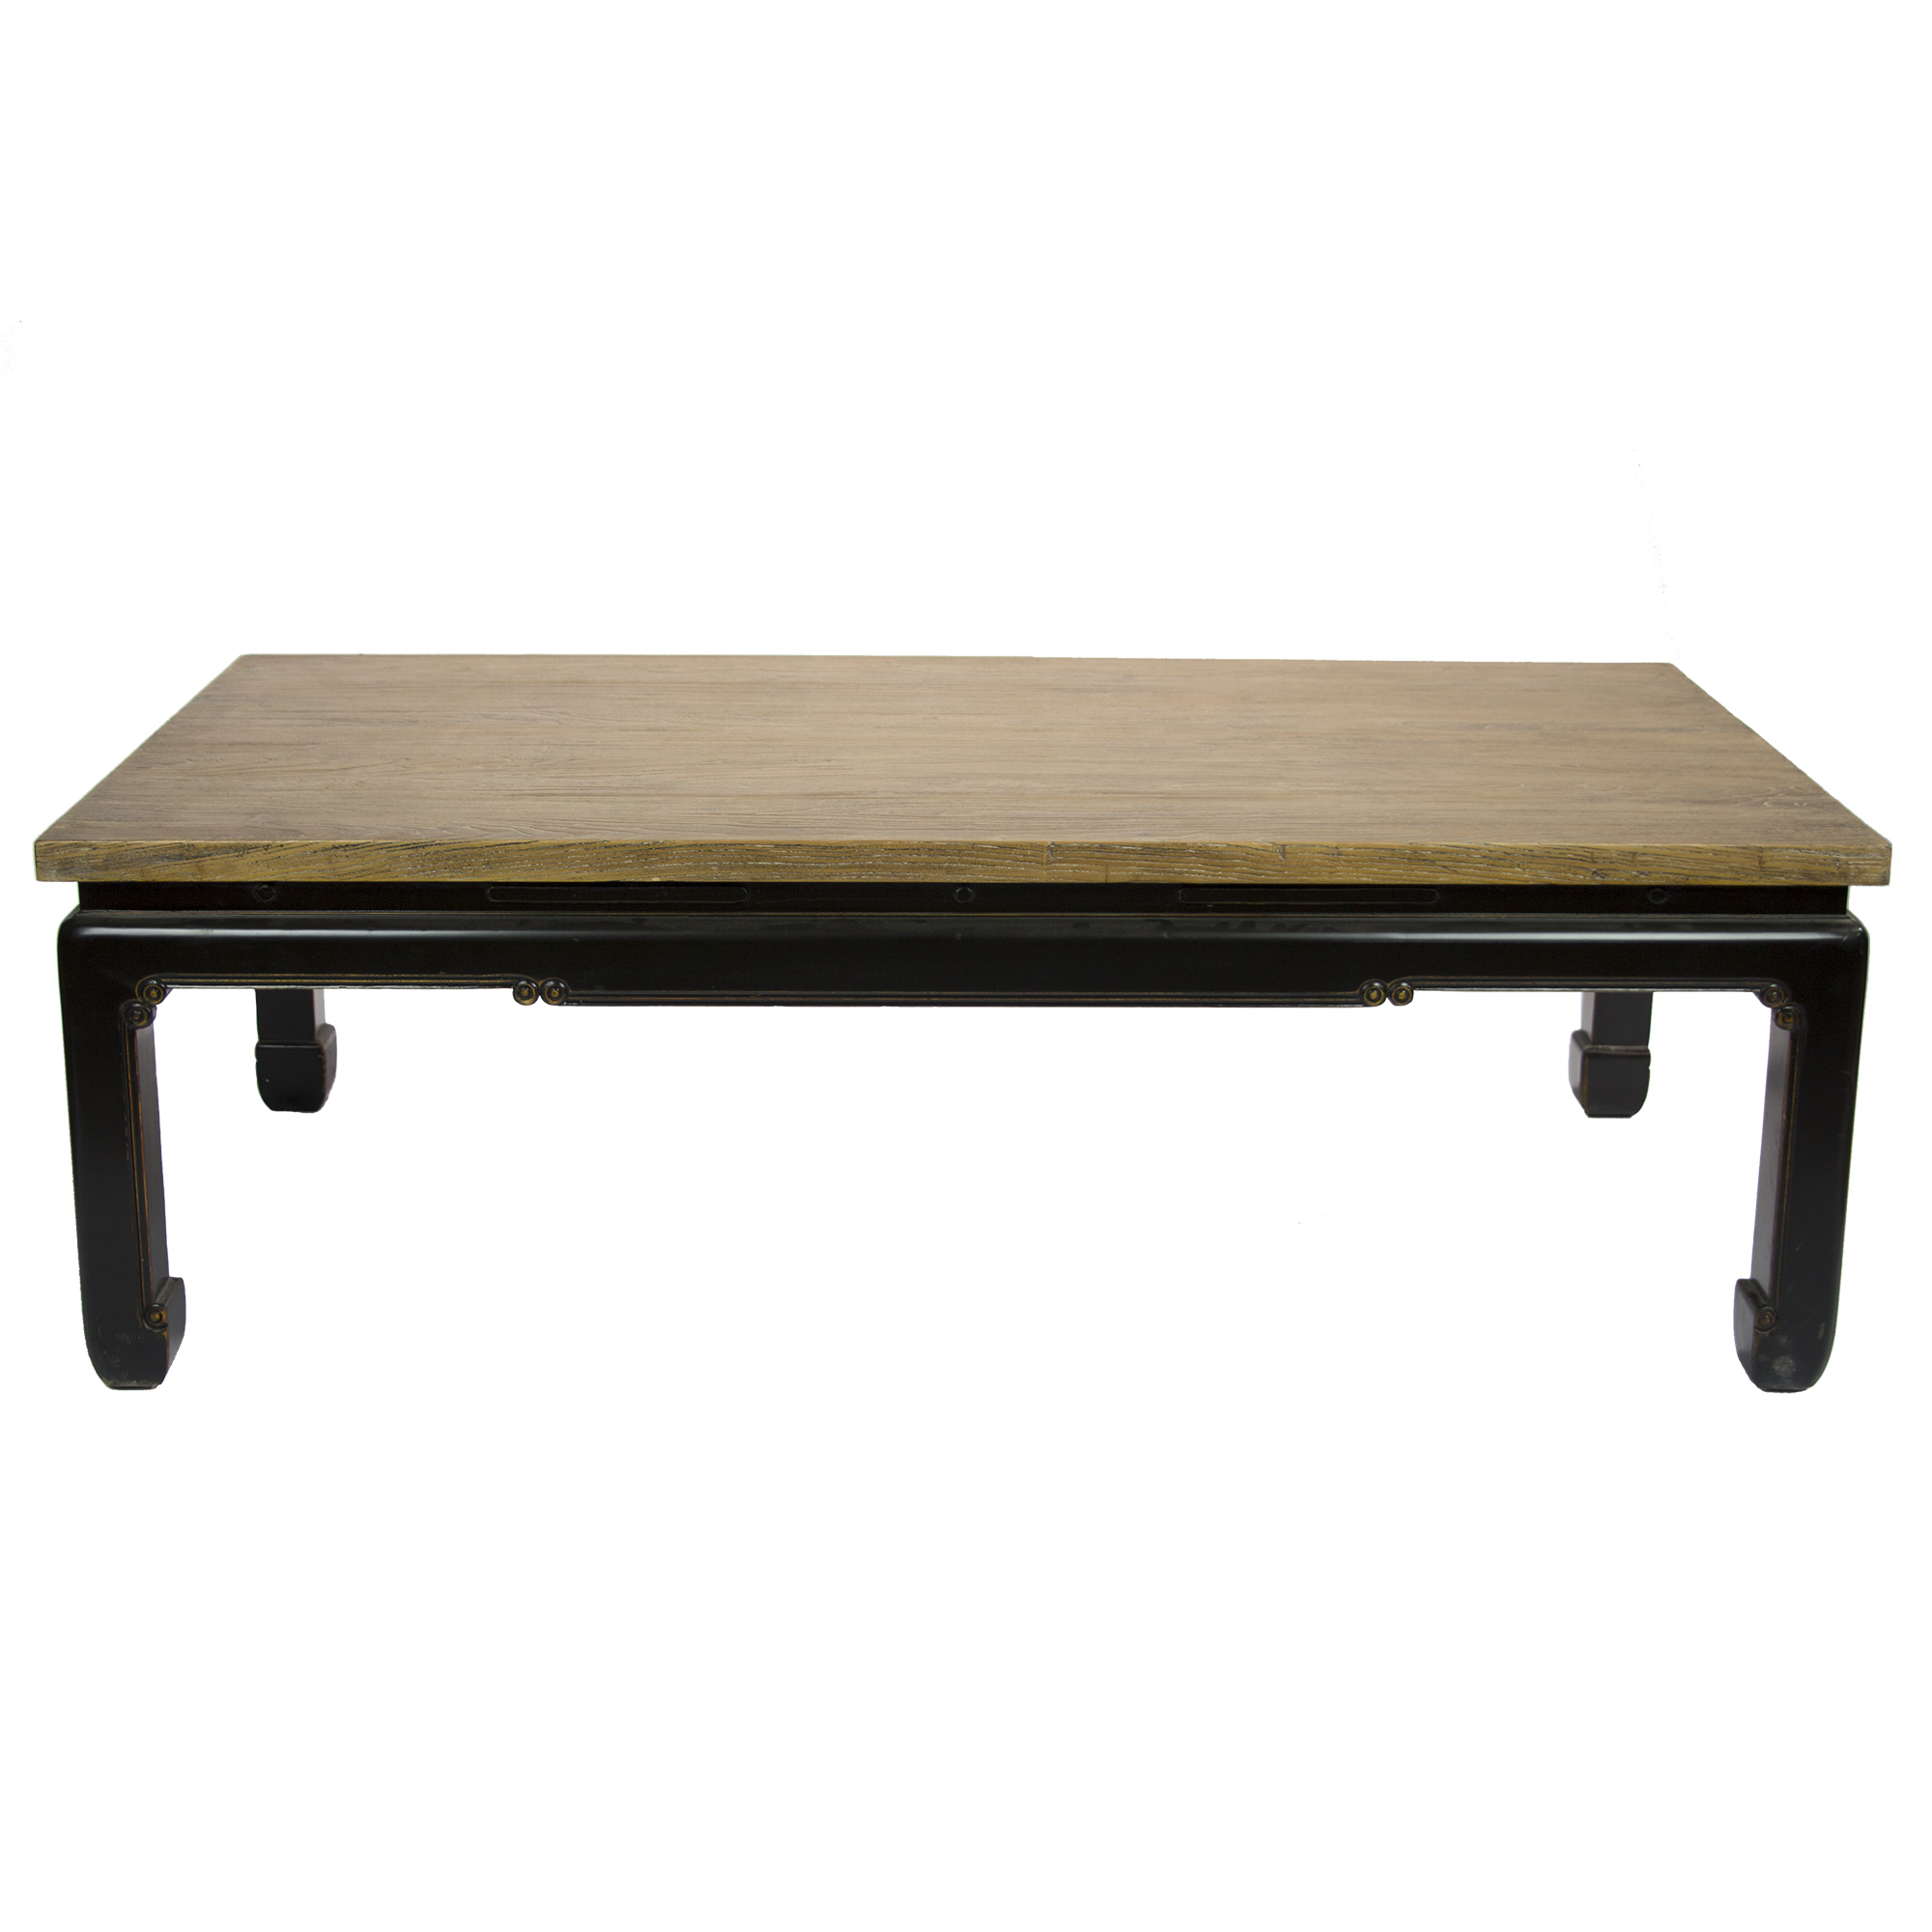 Rectangle Coffee Tables You Ll Love: Rectangle Reclaimed Wood Coffee Table